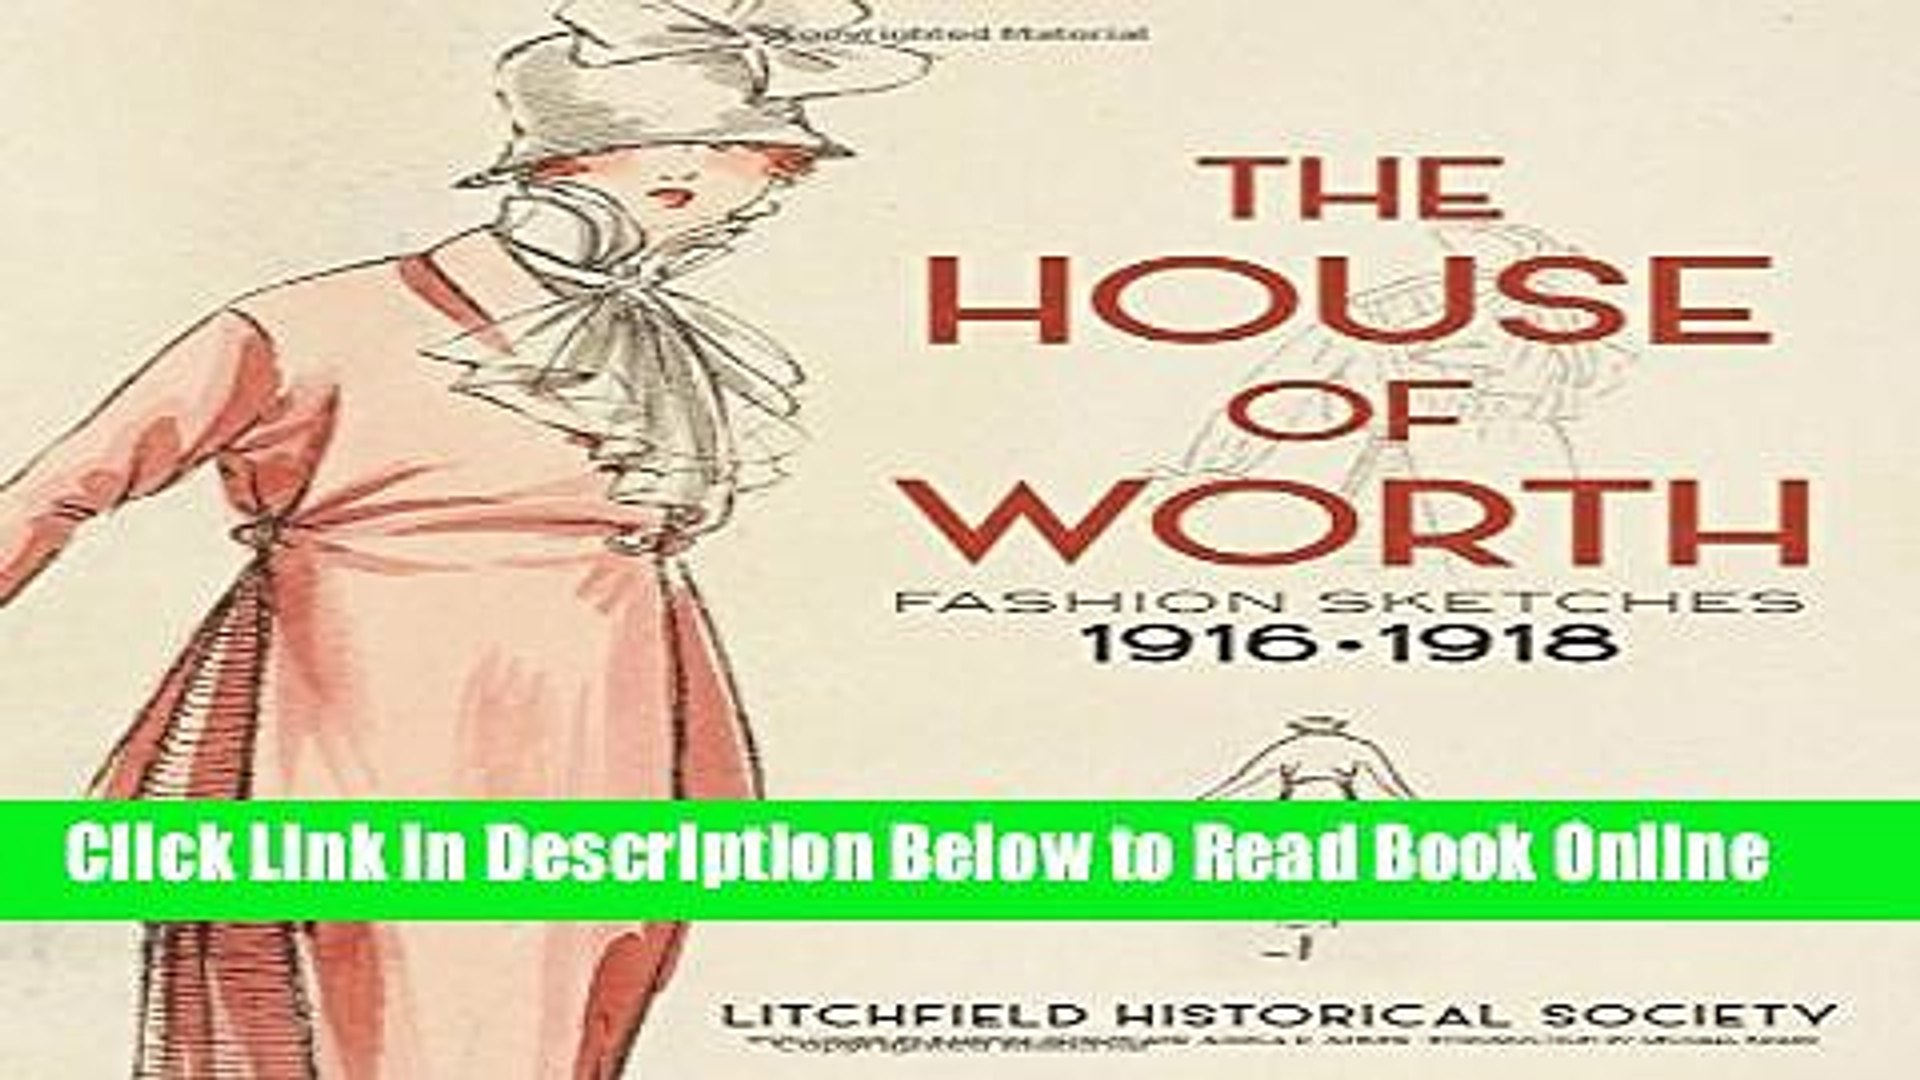 Download The House of Worth: Fashion Sketches, 1916-1918  Ebook Online